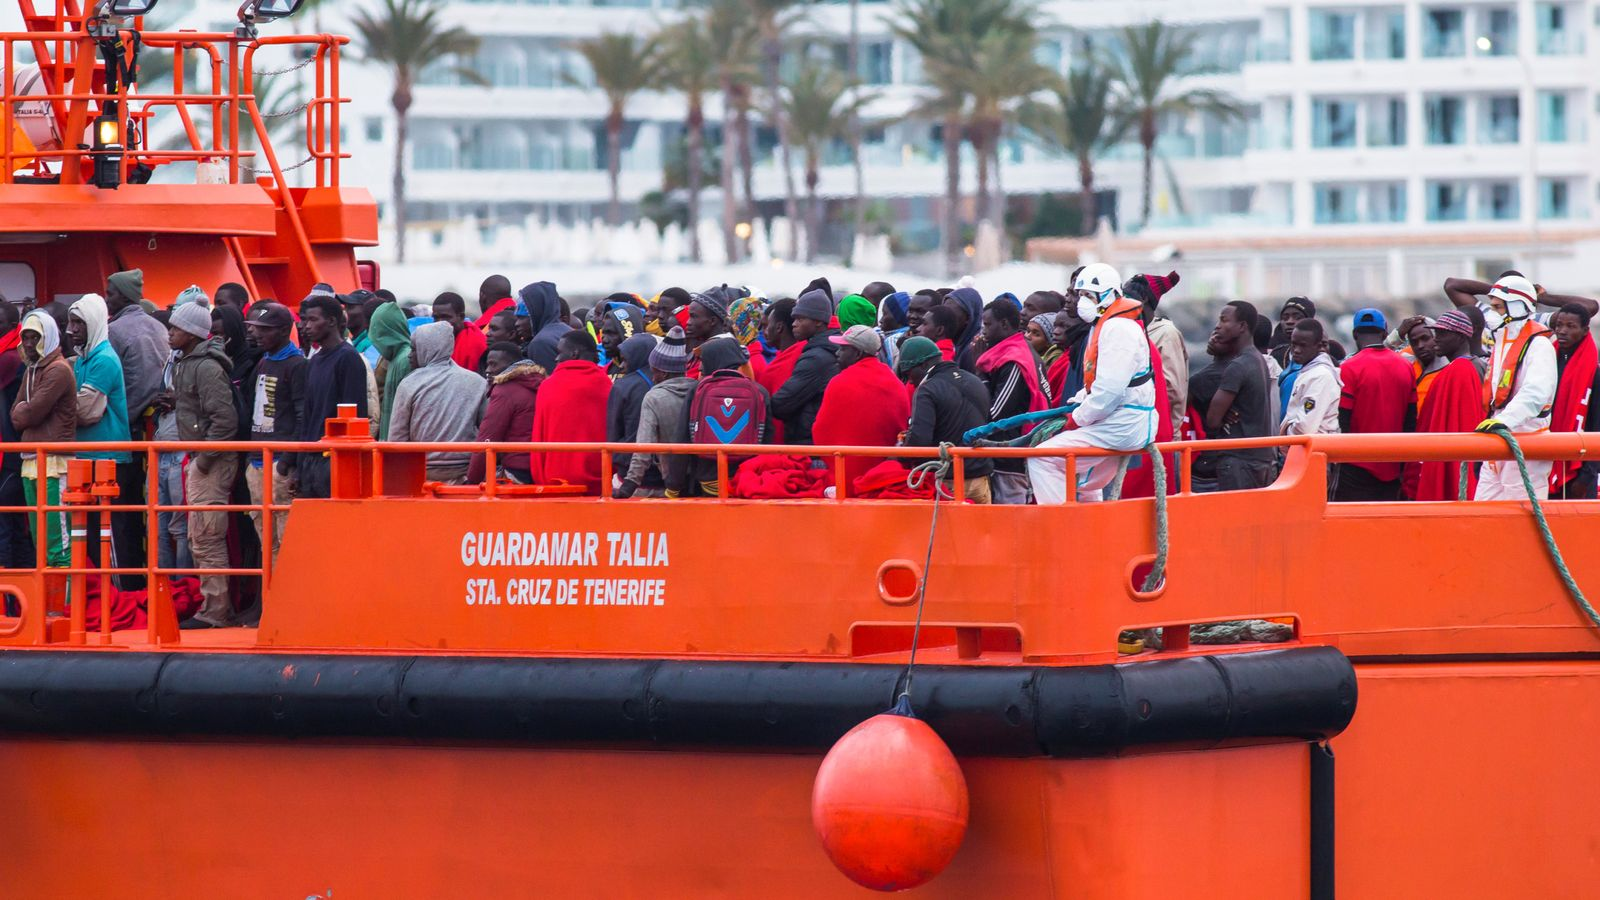 More than 1,600 migrants make